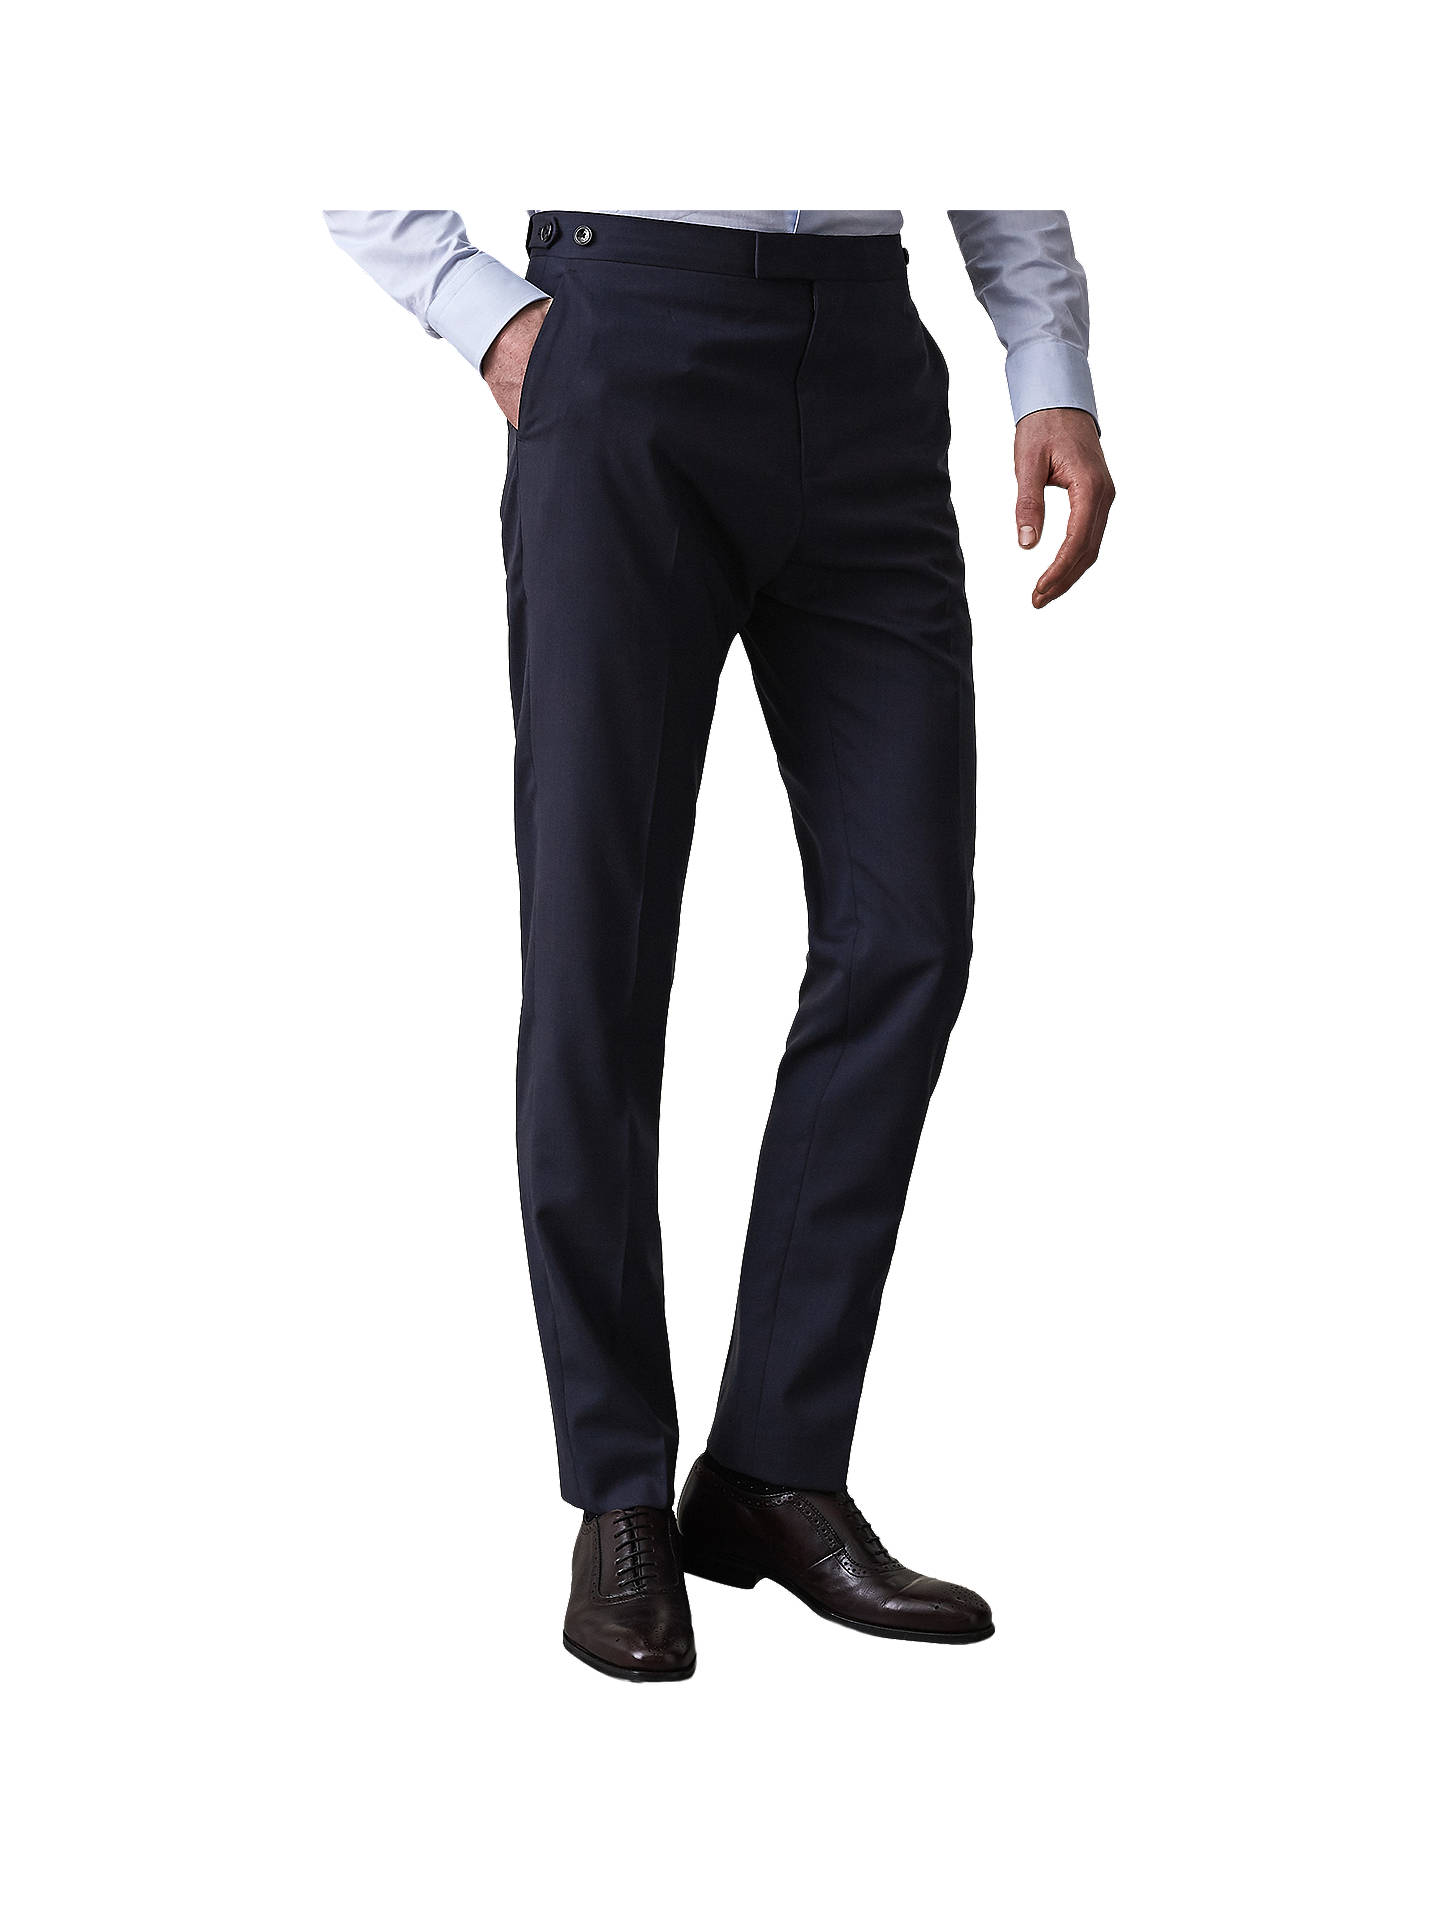 Buy Reiss Voyage Slim Fit Travel Suit Trousers, Navy, 34R Online at johnlewis.com